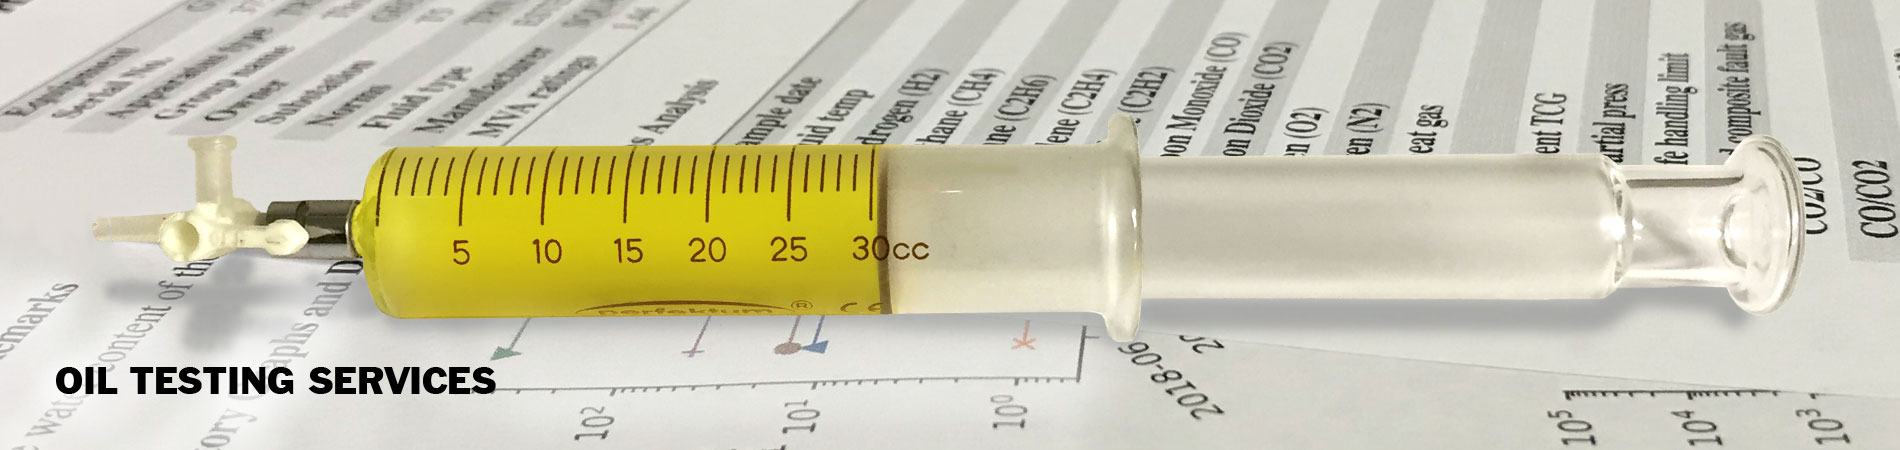 Oil Sampling Syringe Oil Tests Dissolved Gas